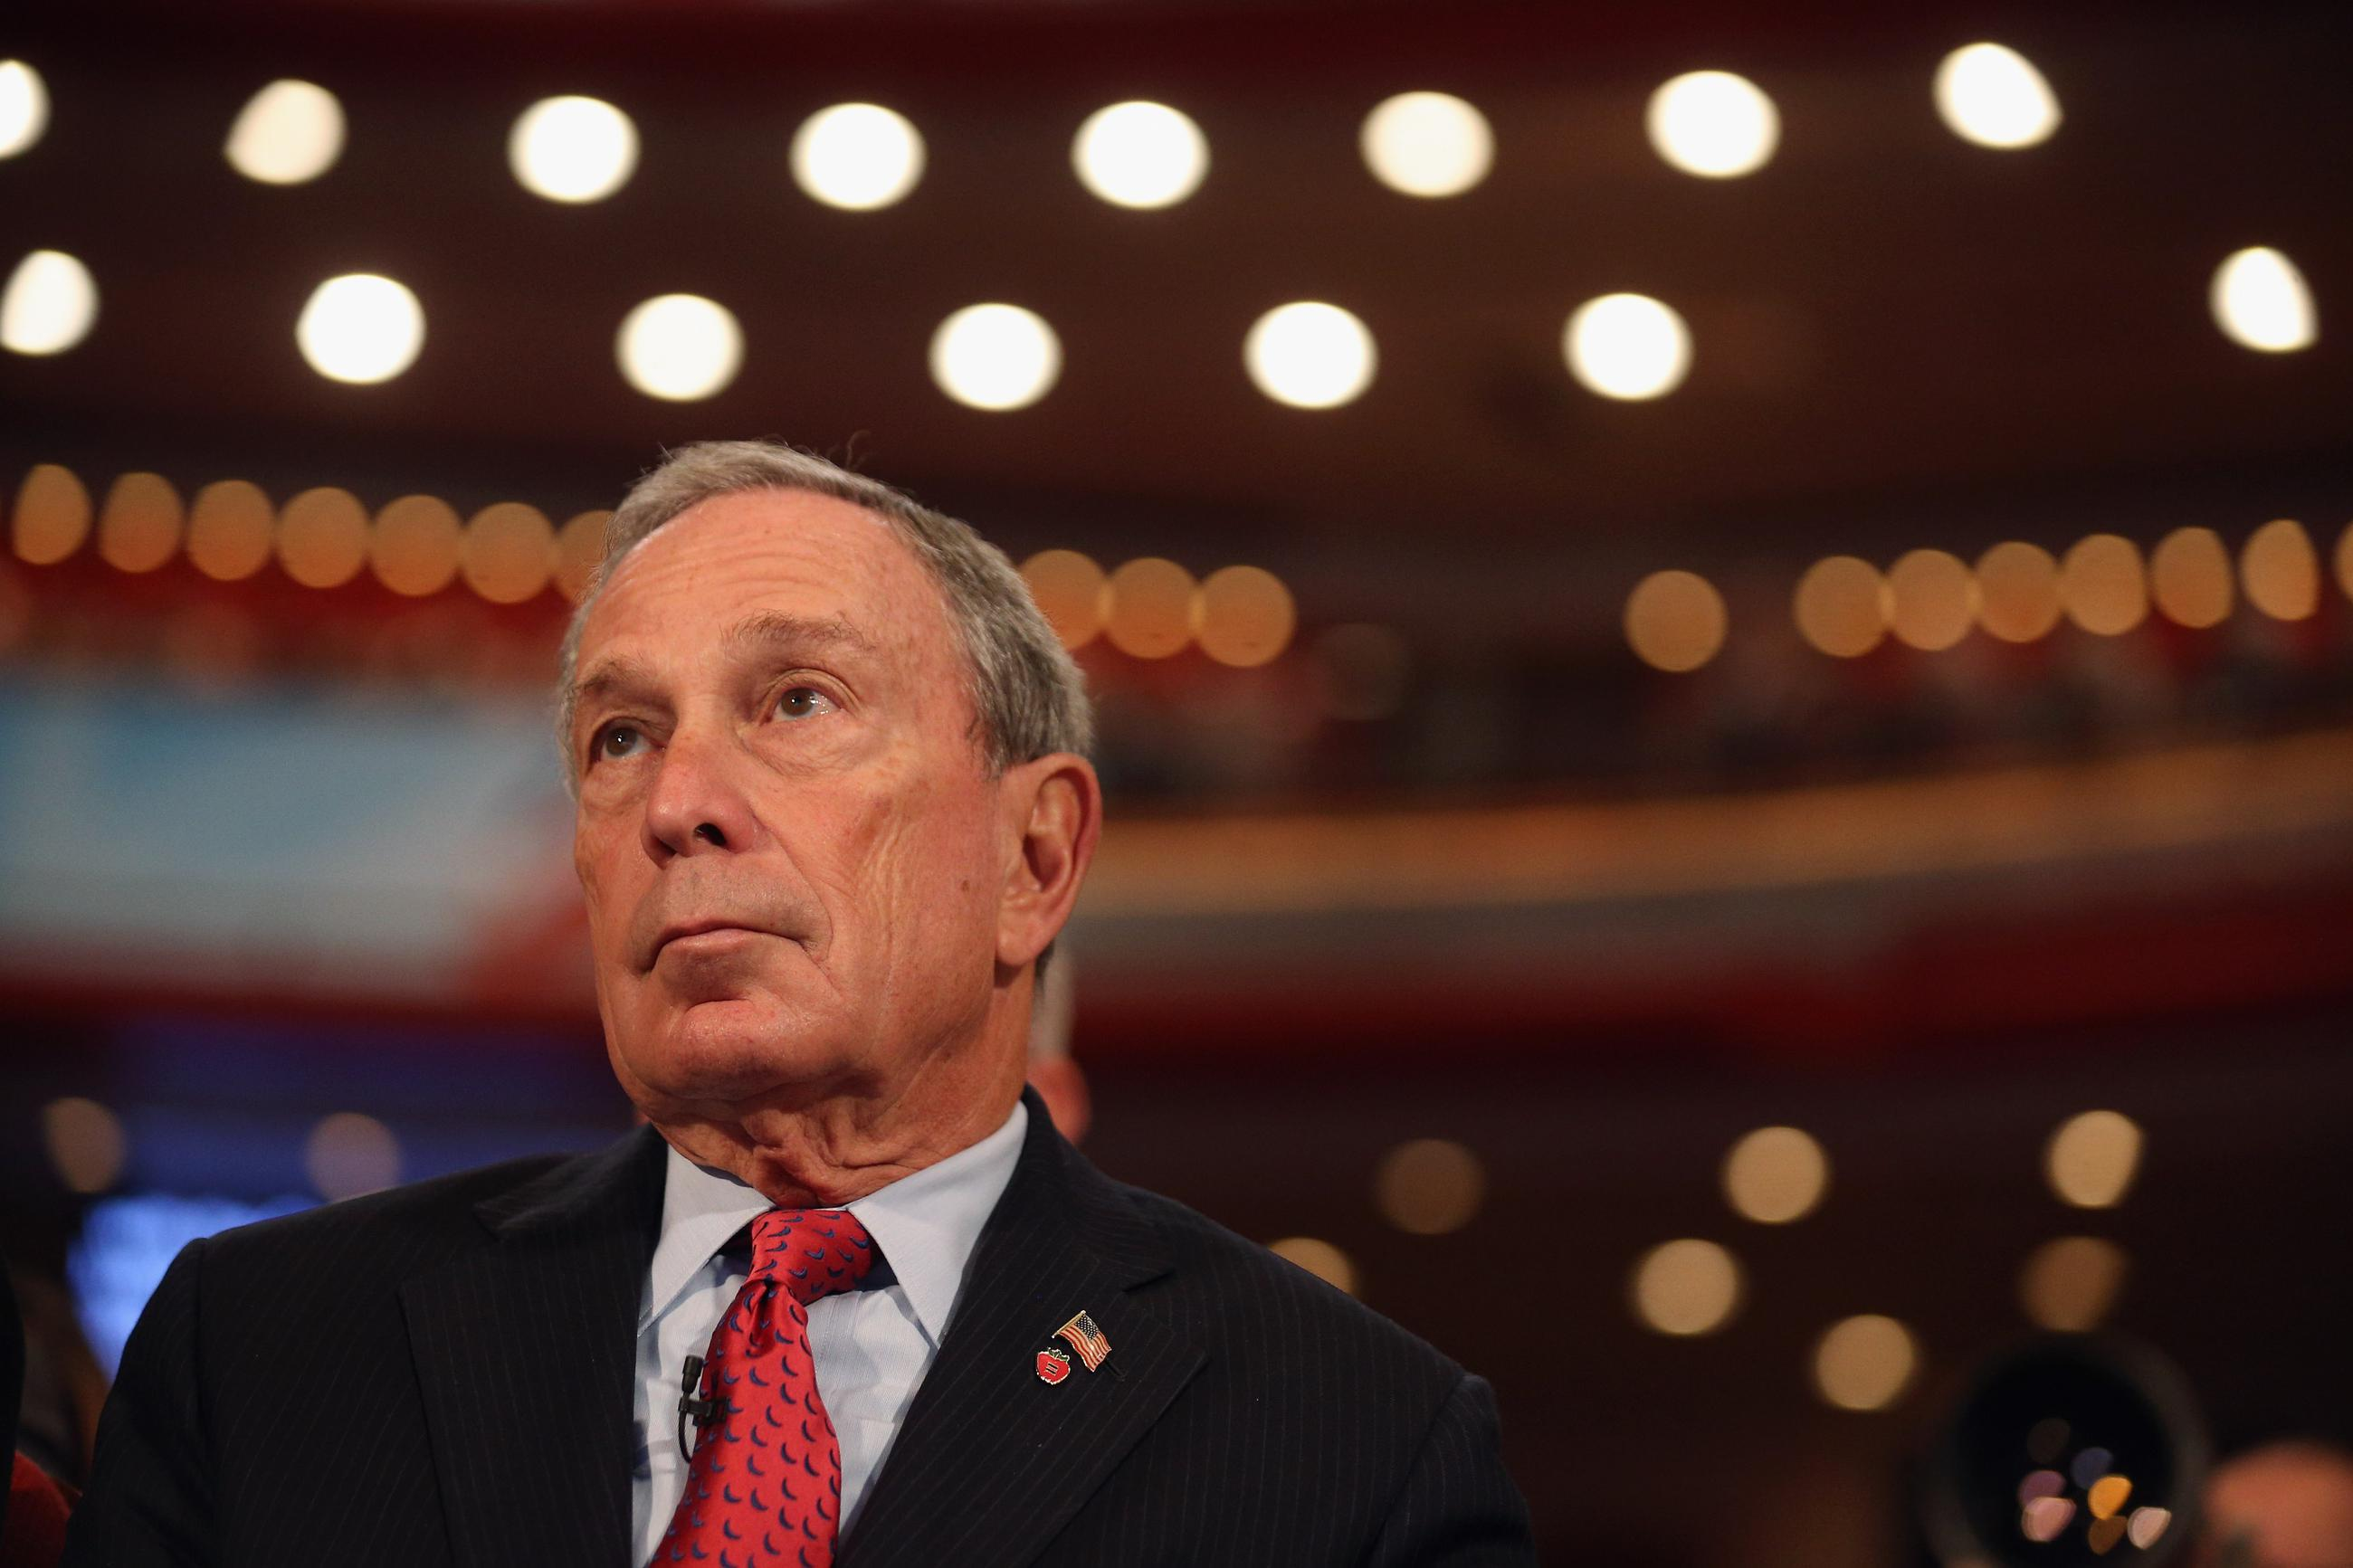 Former Mayor Michael Bloomberg to Become U.N. Climate Envoy